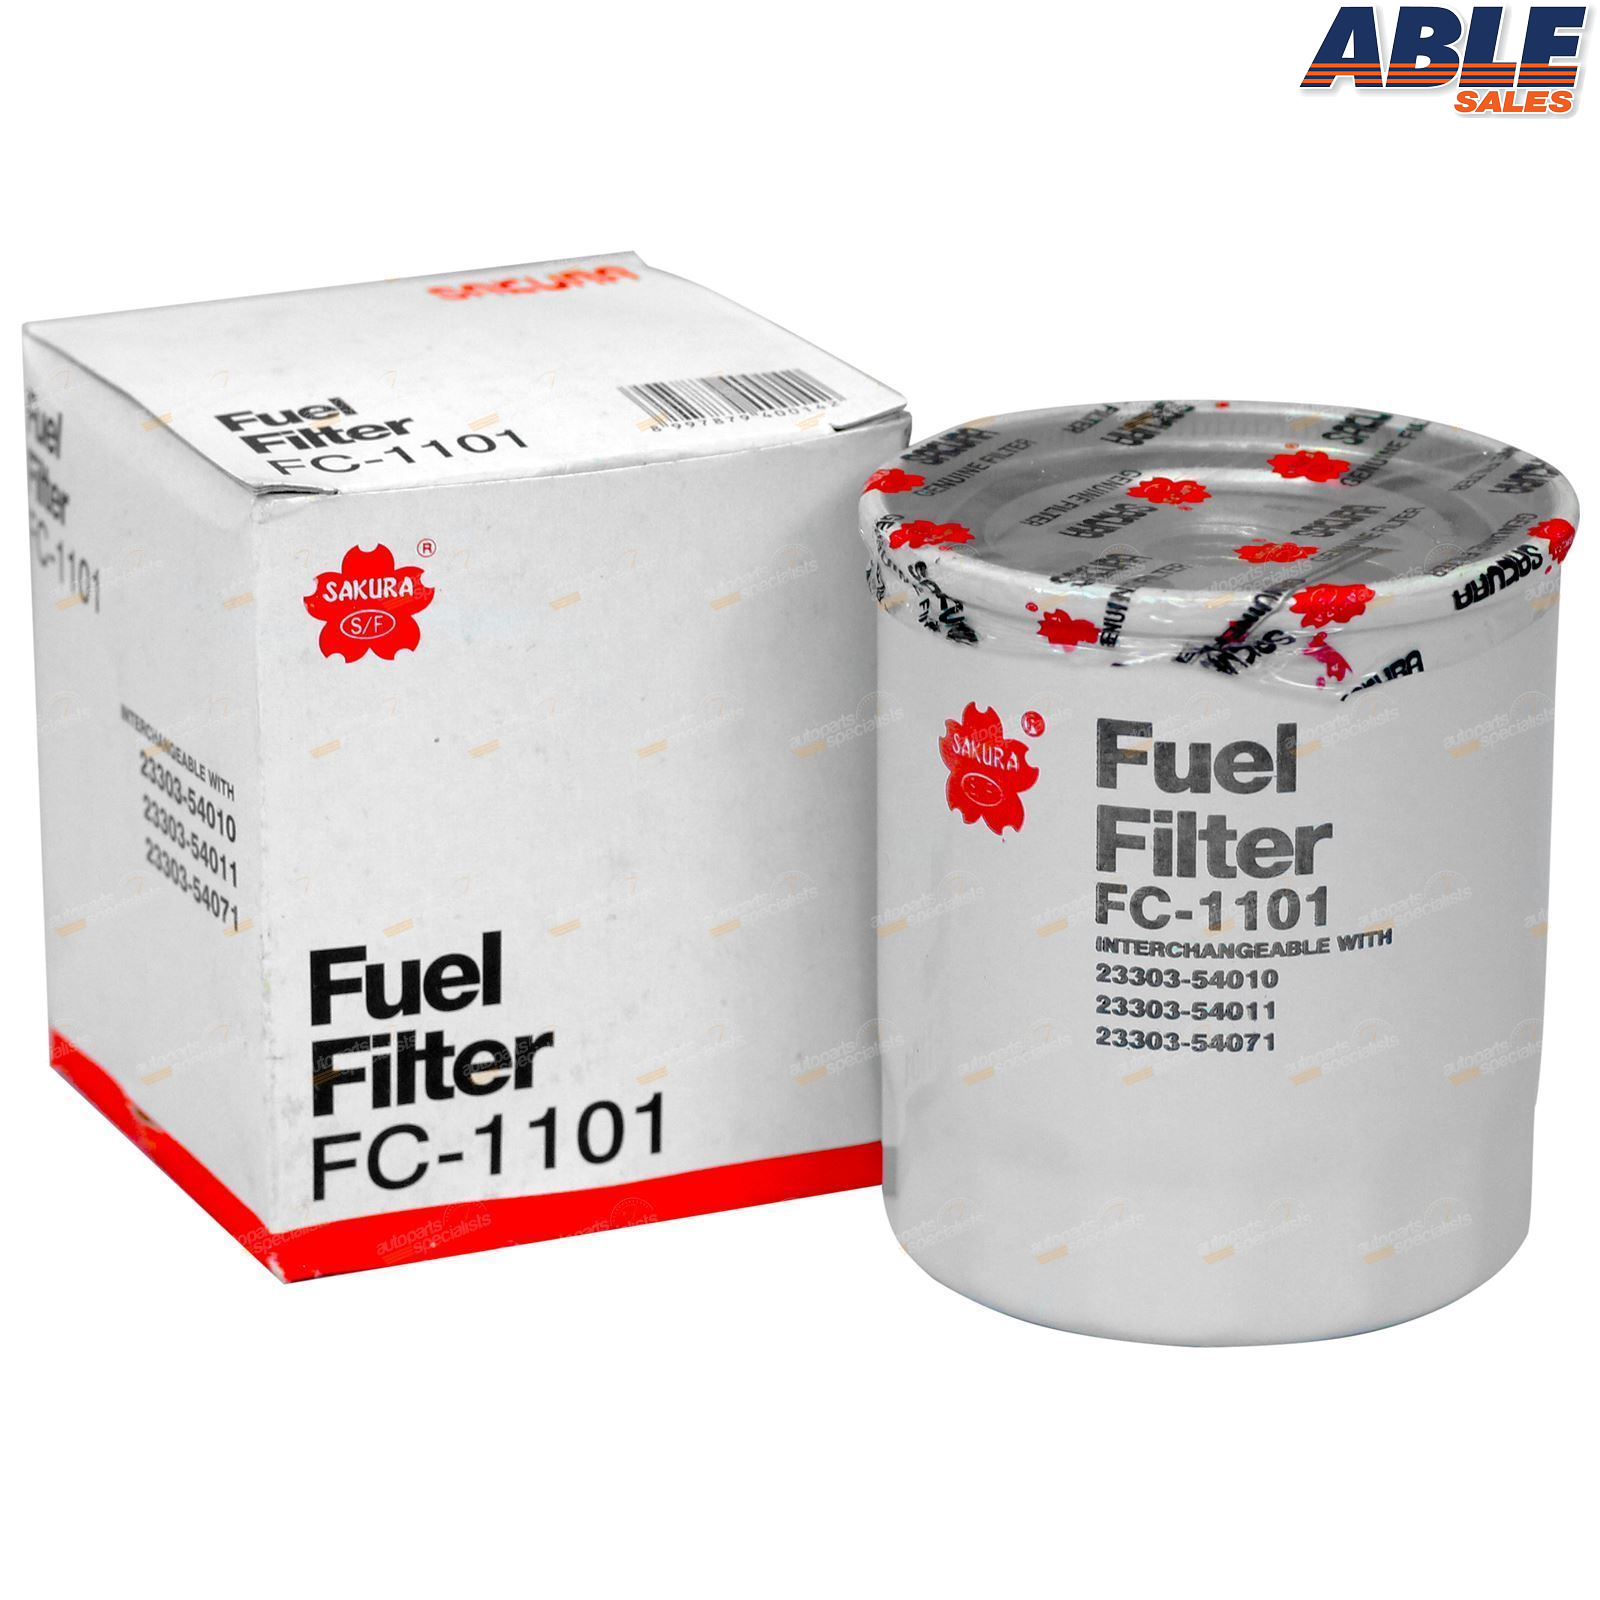 Call Able Sales Australias Generator Specialists On 1300 793 001 Isuzu Diesel Fuel Filters Osaka Filter Mz169